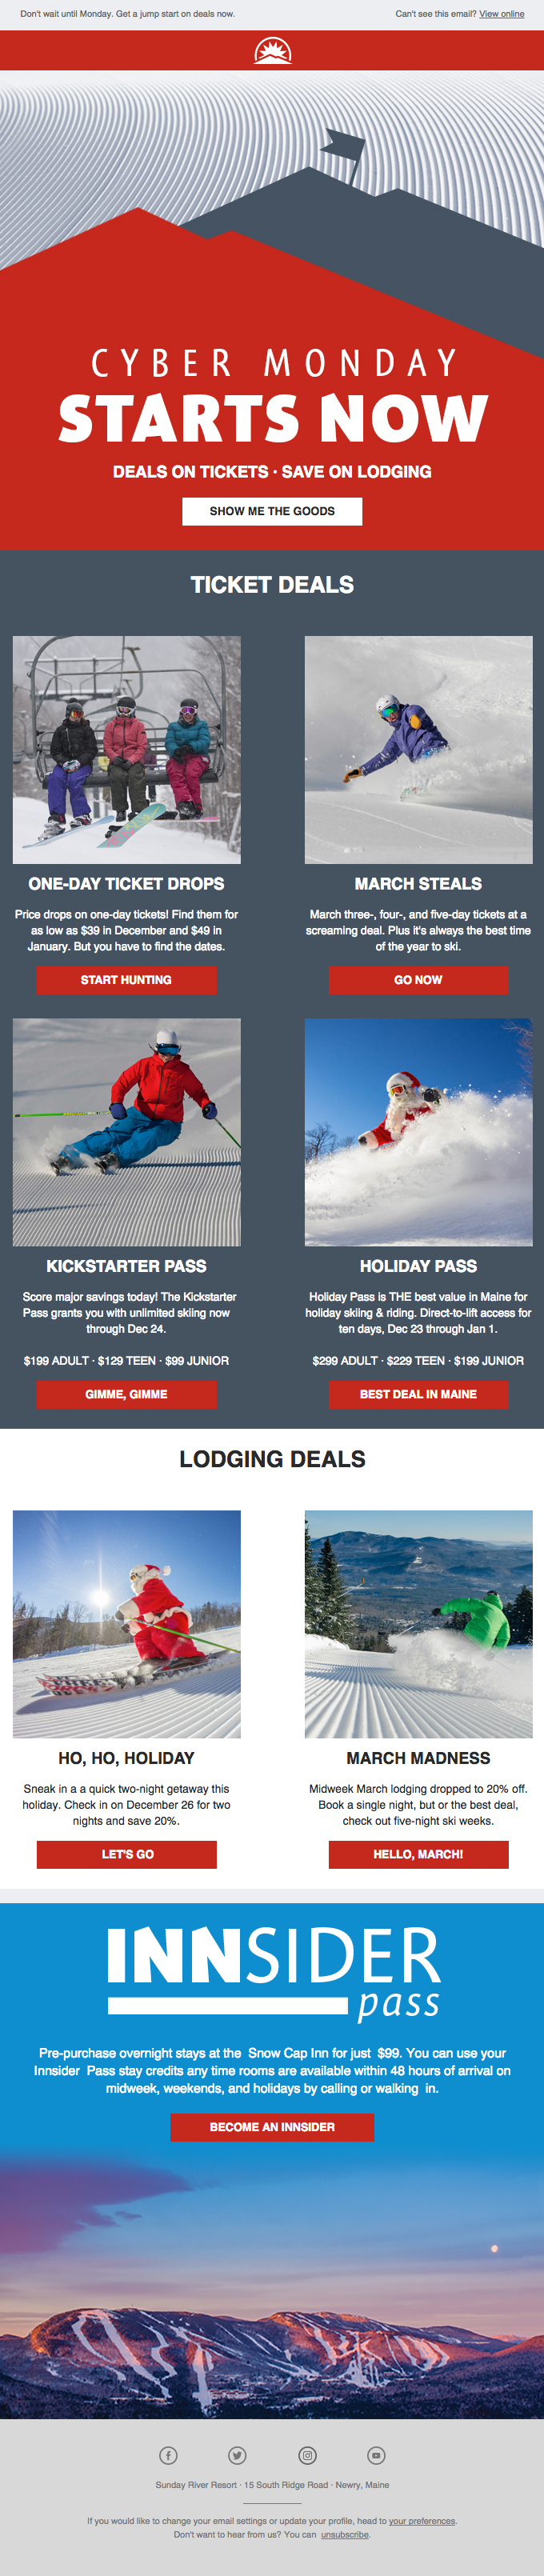 Sunday River Resort presented a lot of good elements in their Cyber Monday emails.